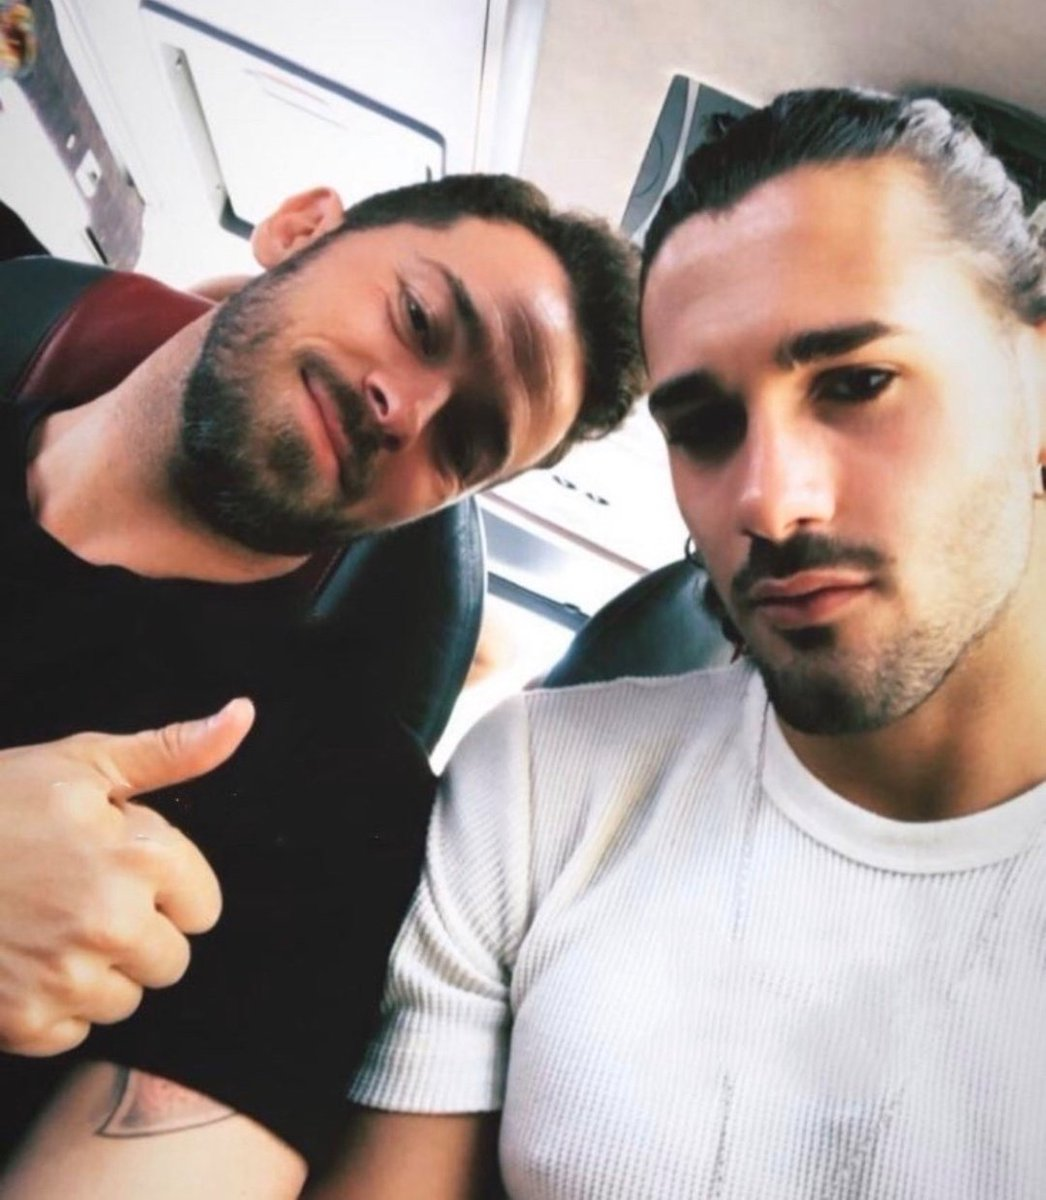 . @artemchigvintse and @GrazianoDiPrima have l joined @E4Tweets @CoachTrip! Read our exclusive interview with Graziano on Monday, at theversion.co.uk #CoachTrip